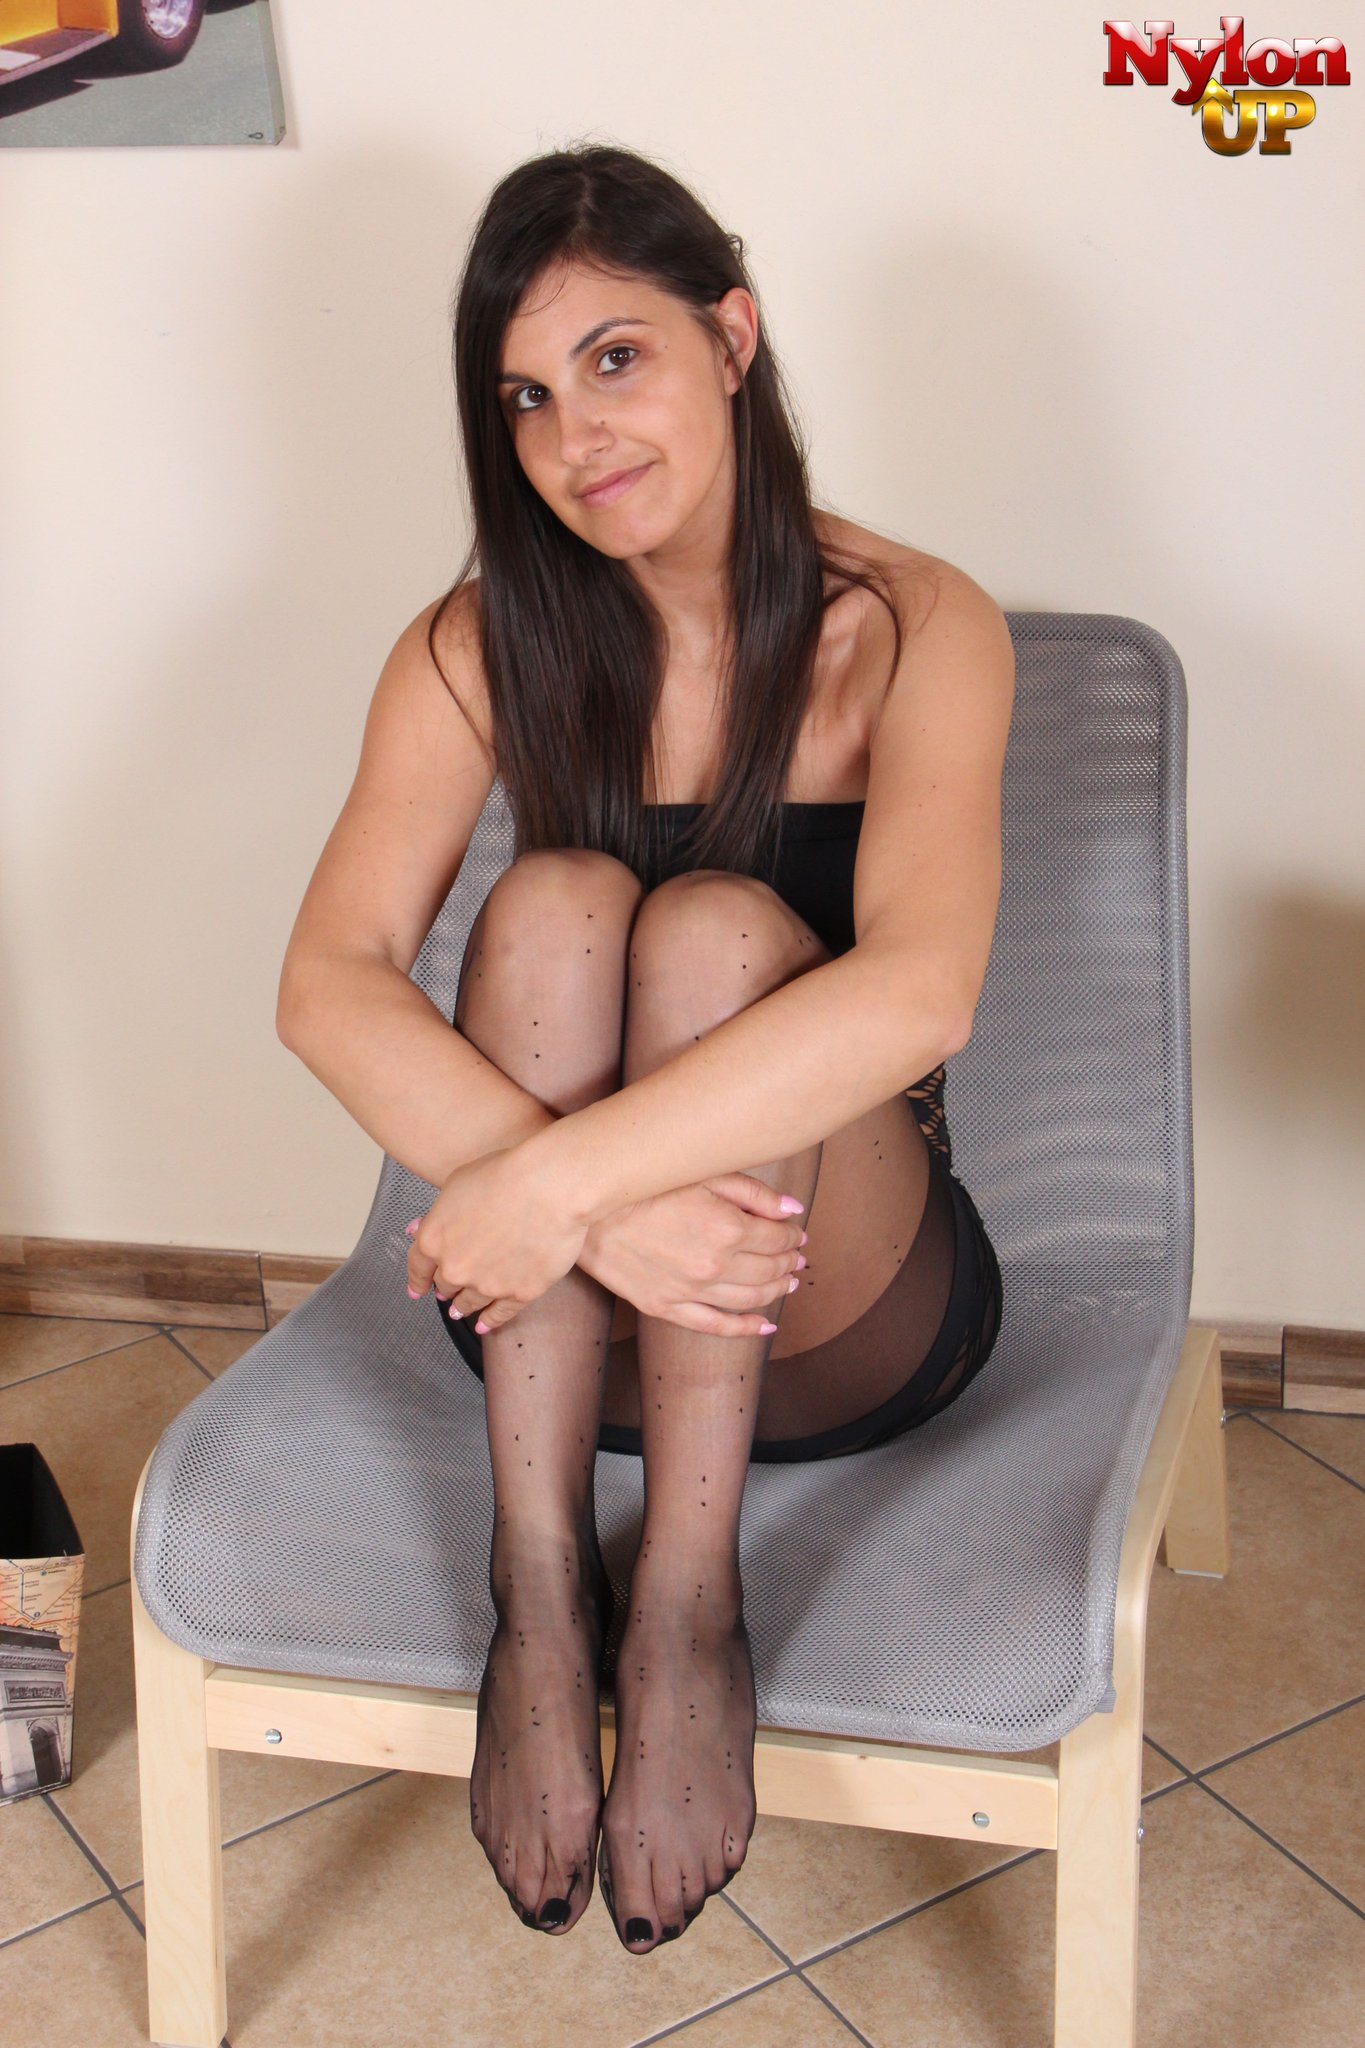 Pantyhose lovers